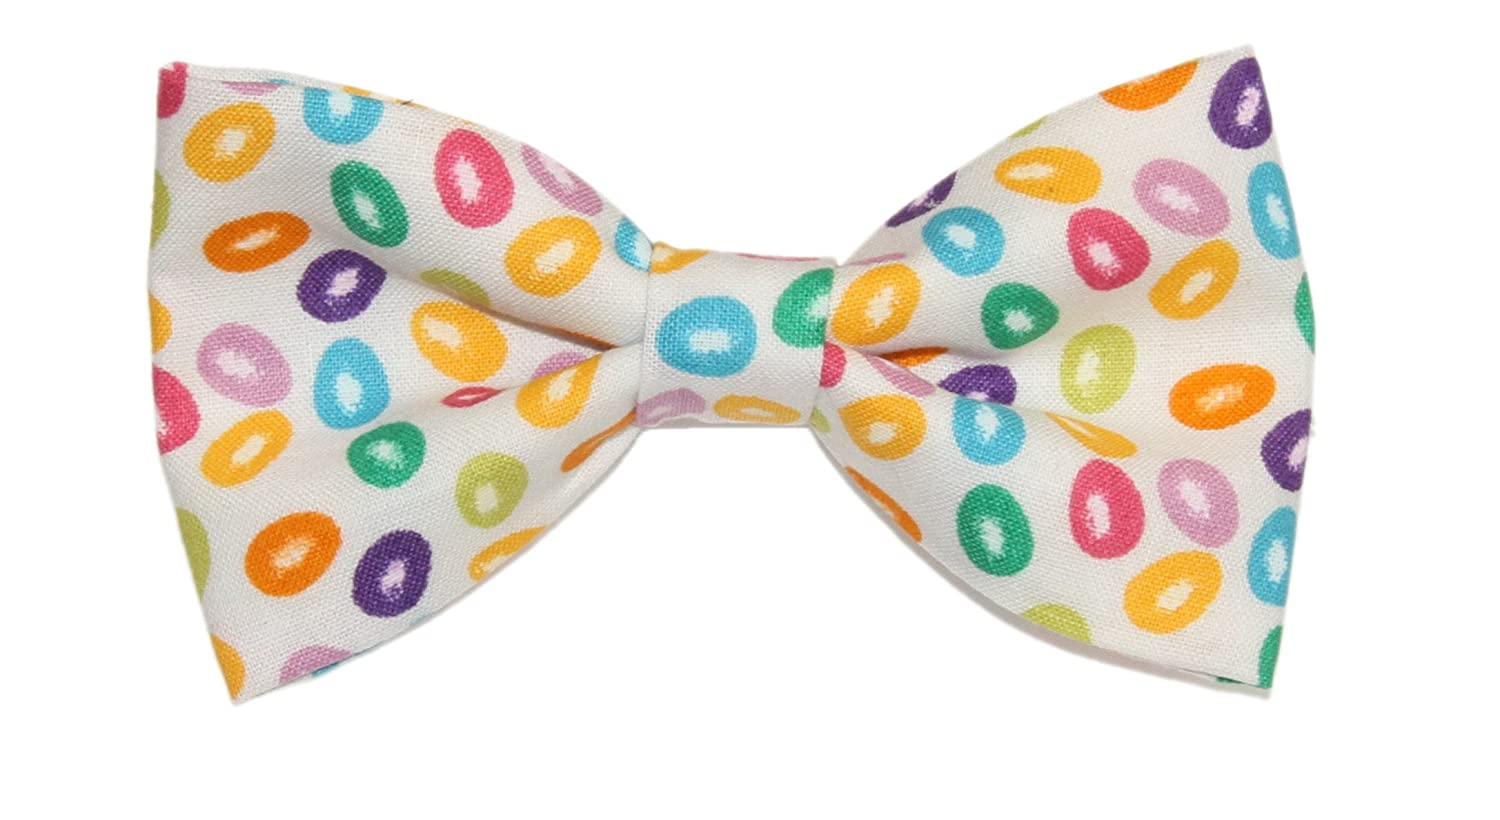 Mens Jelly Beans on White Background Pre-Tied Cotton Bow Tie On Adjustable Twill Strap